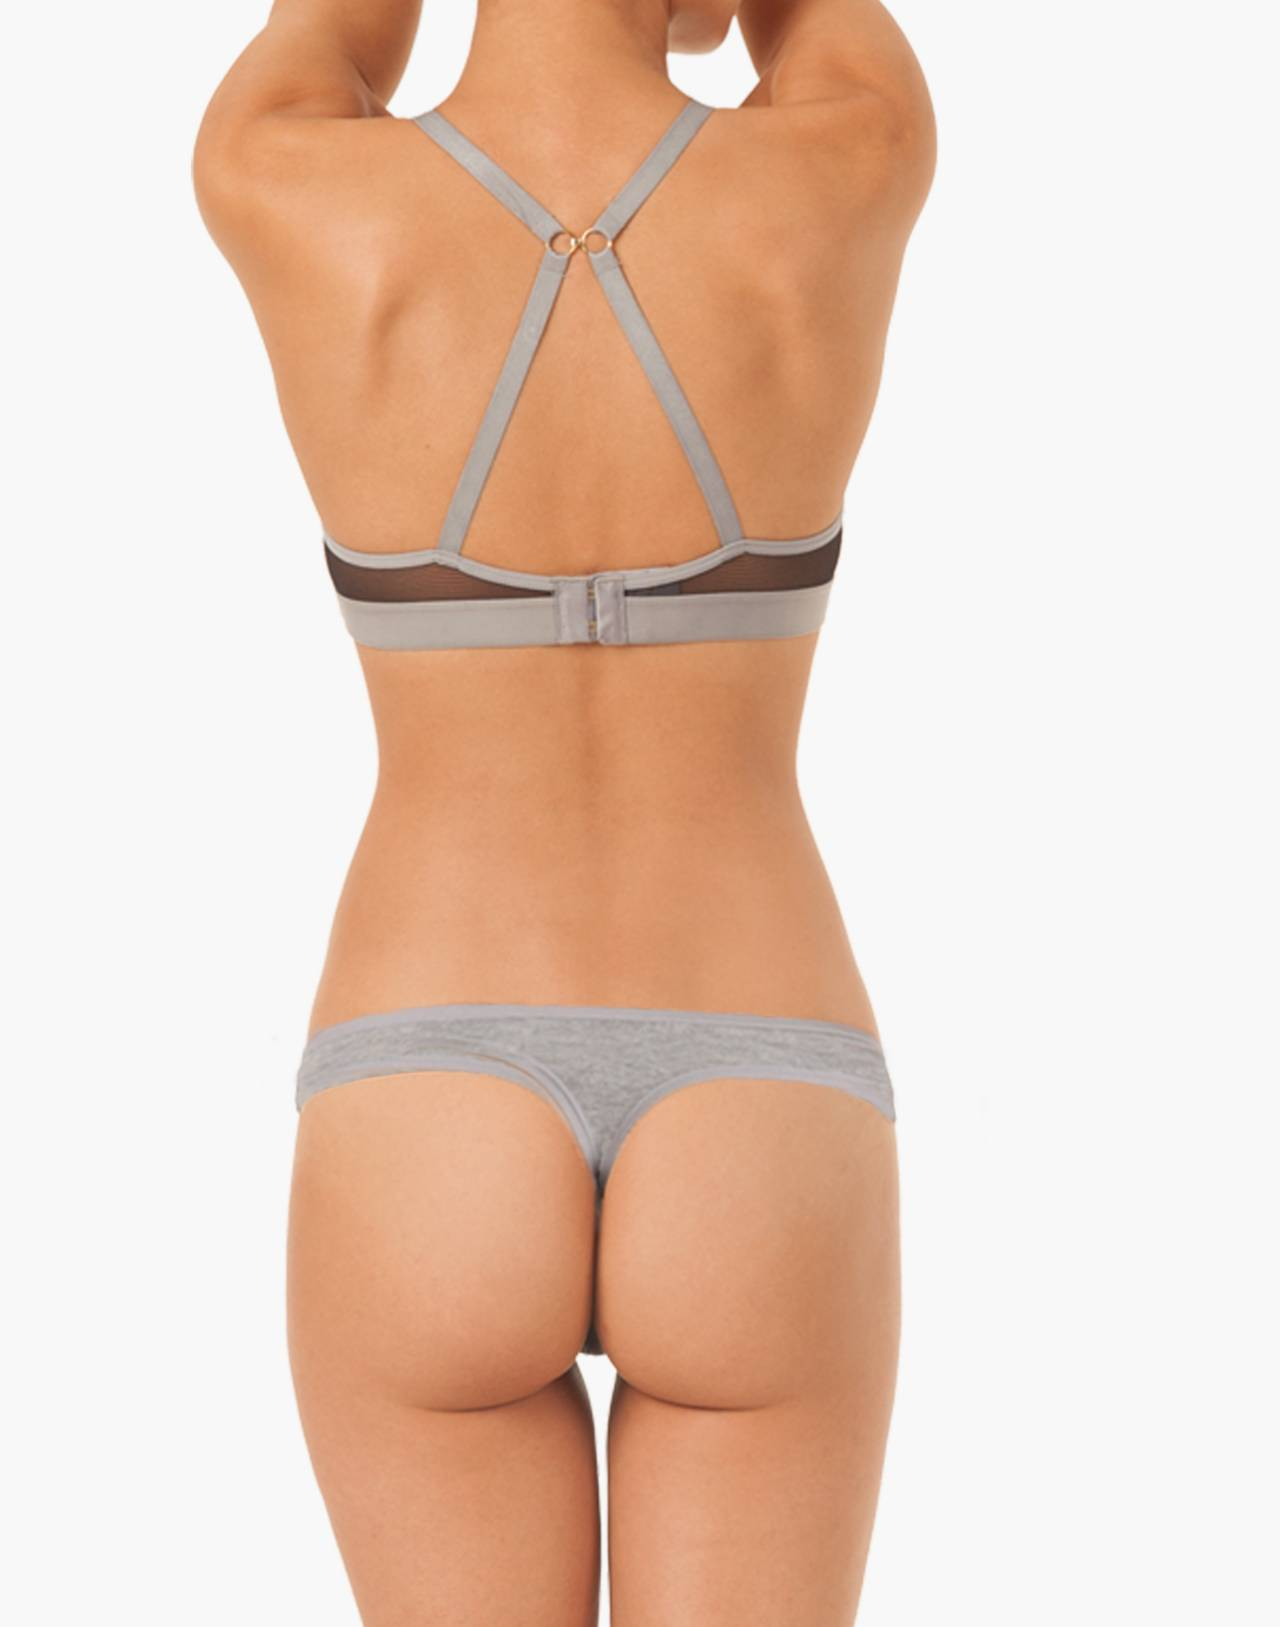 LIVELY™ All-Day Deep-V No-Wire Bra in gray image 2